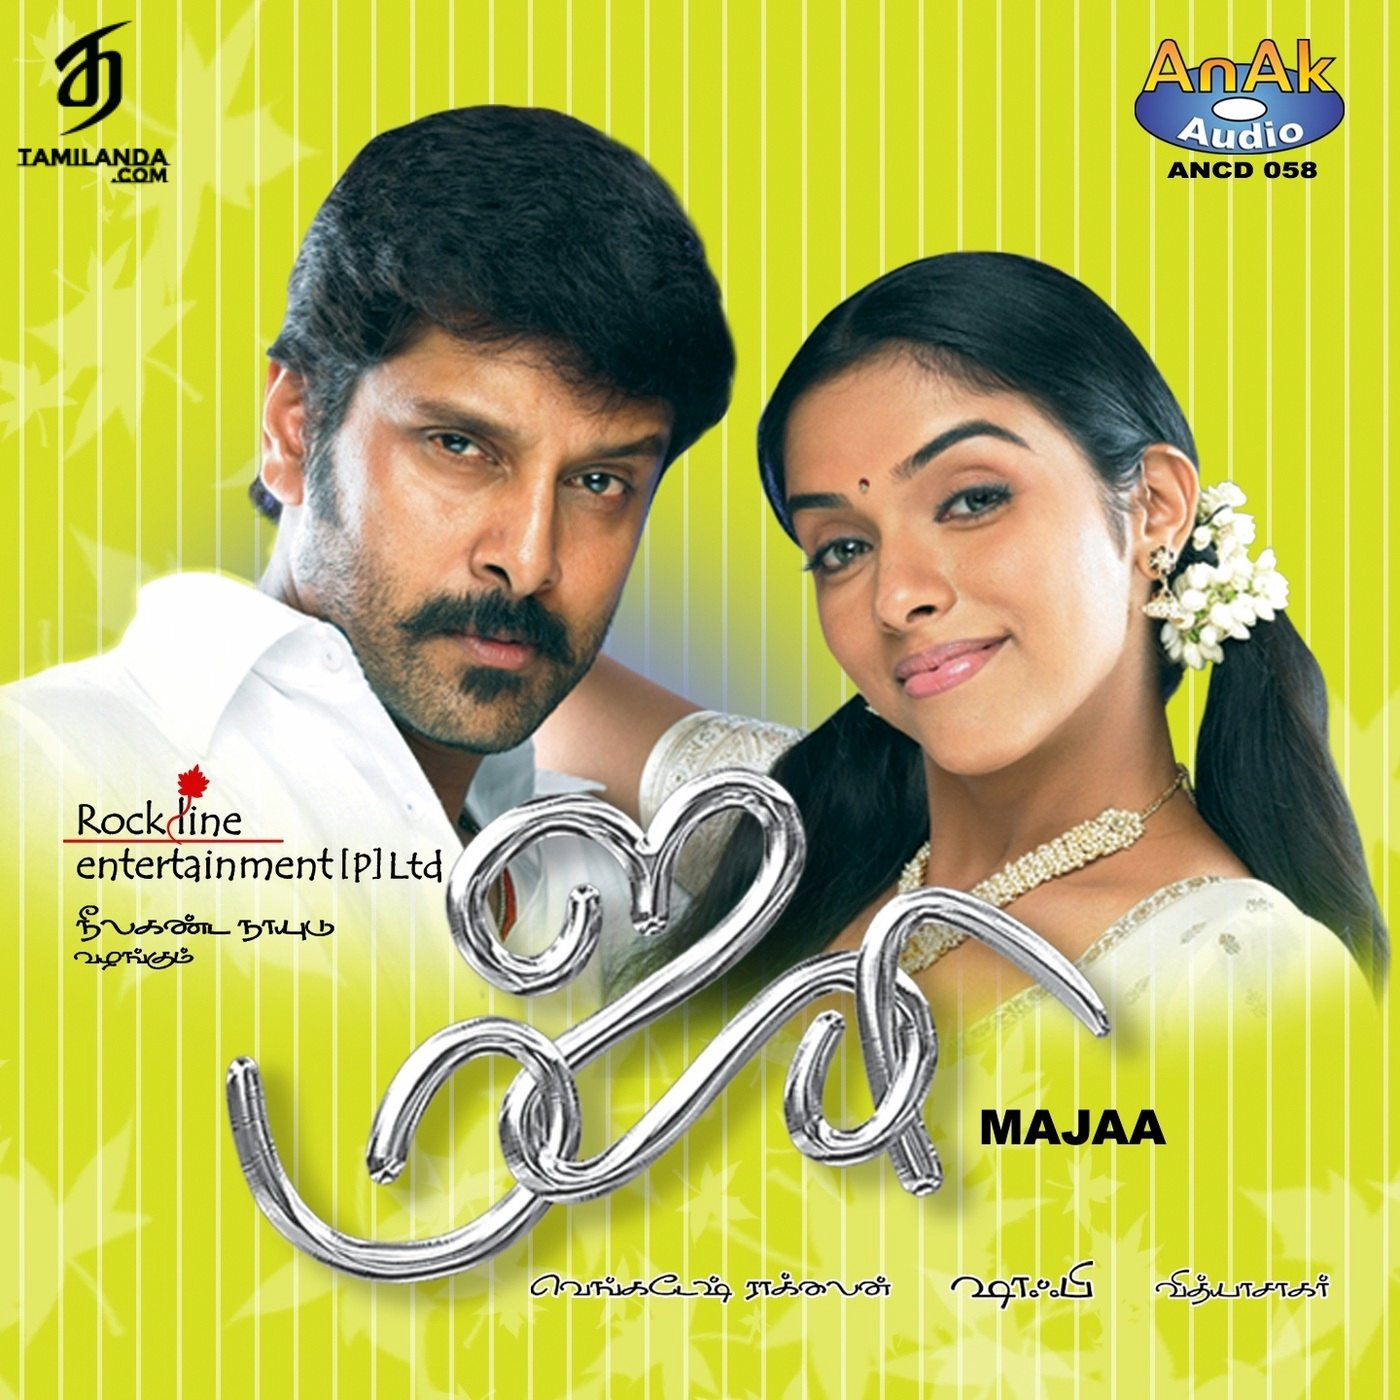 Majaa FLAC/WAV Songs